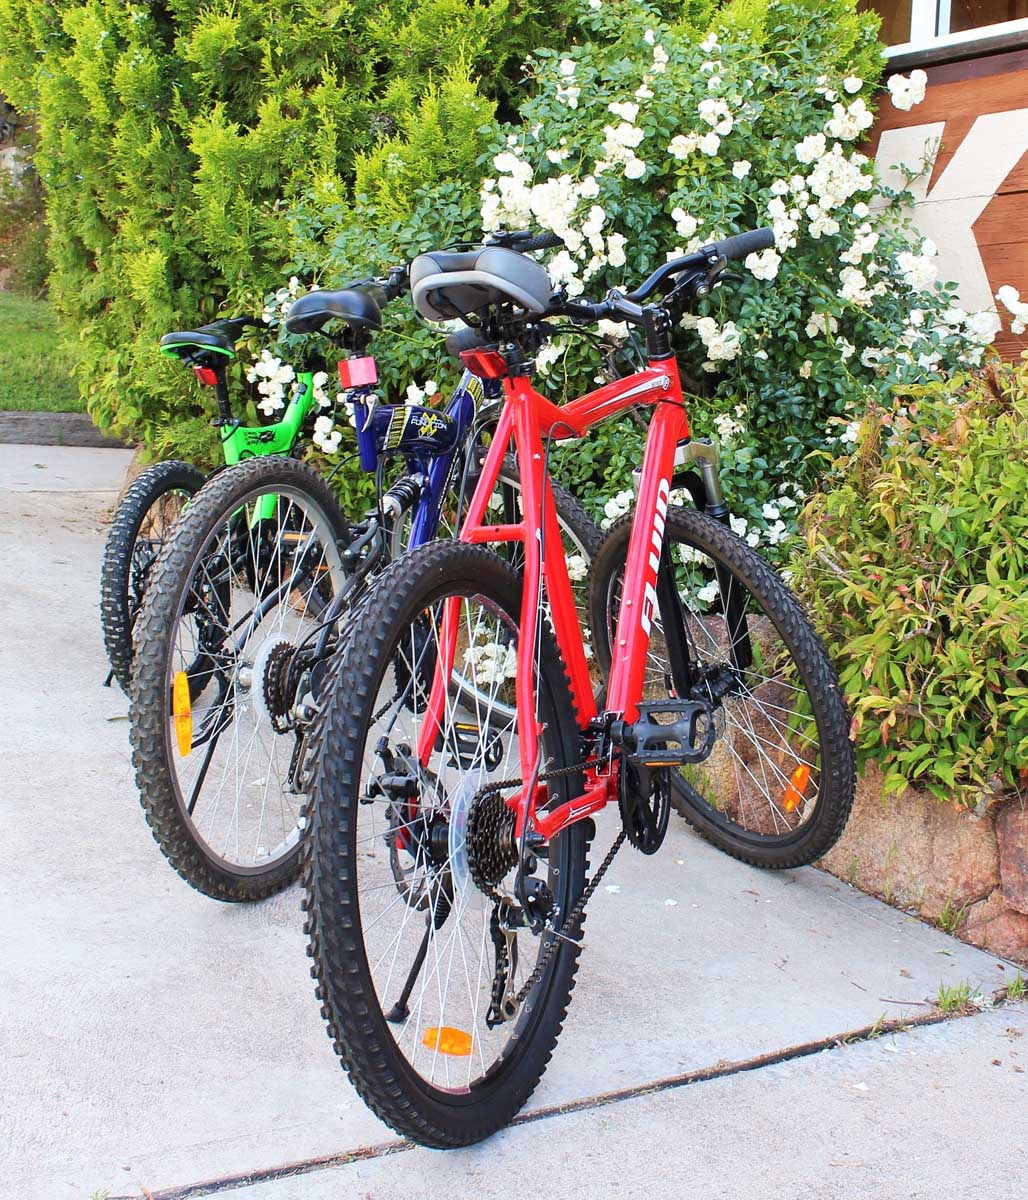 Ski-Inn-Jindabyne-Accommdation-Cafe-restaurant-bar- Free Bike Hire 04